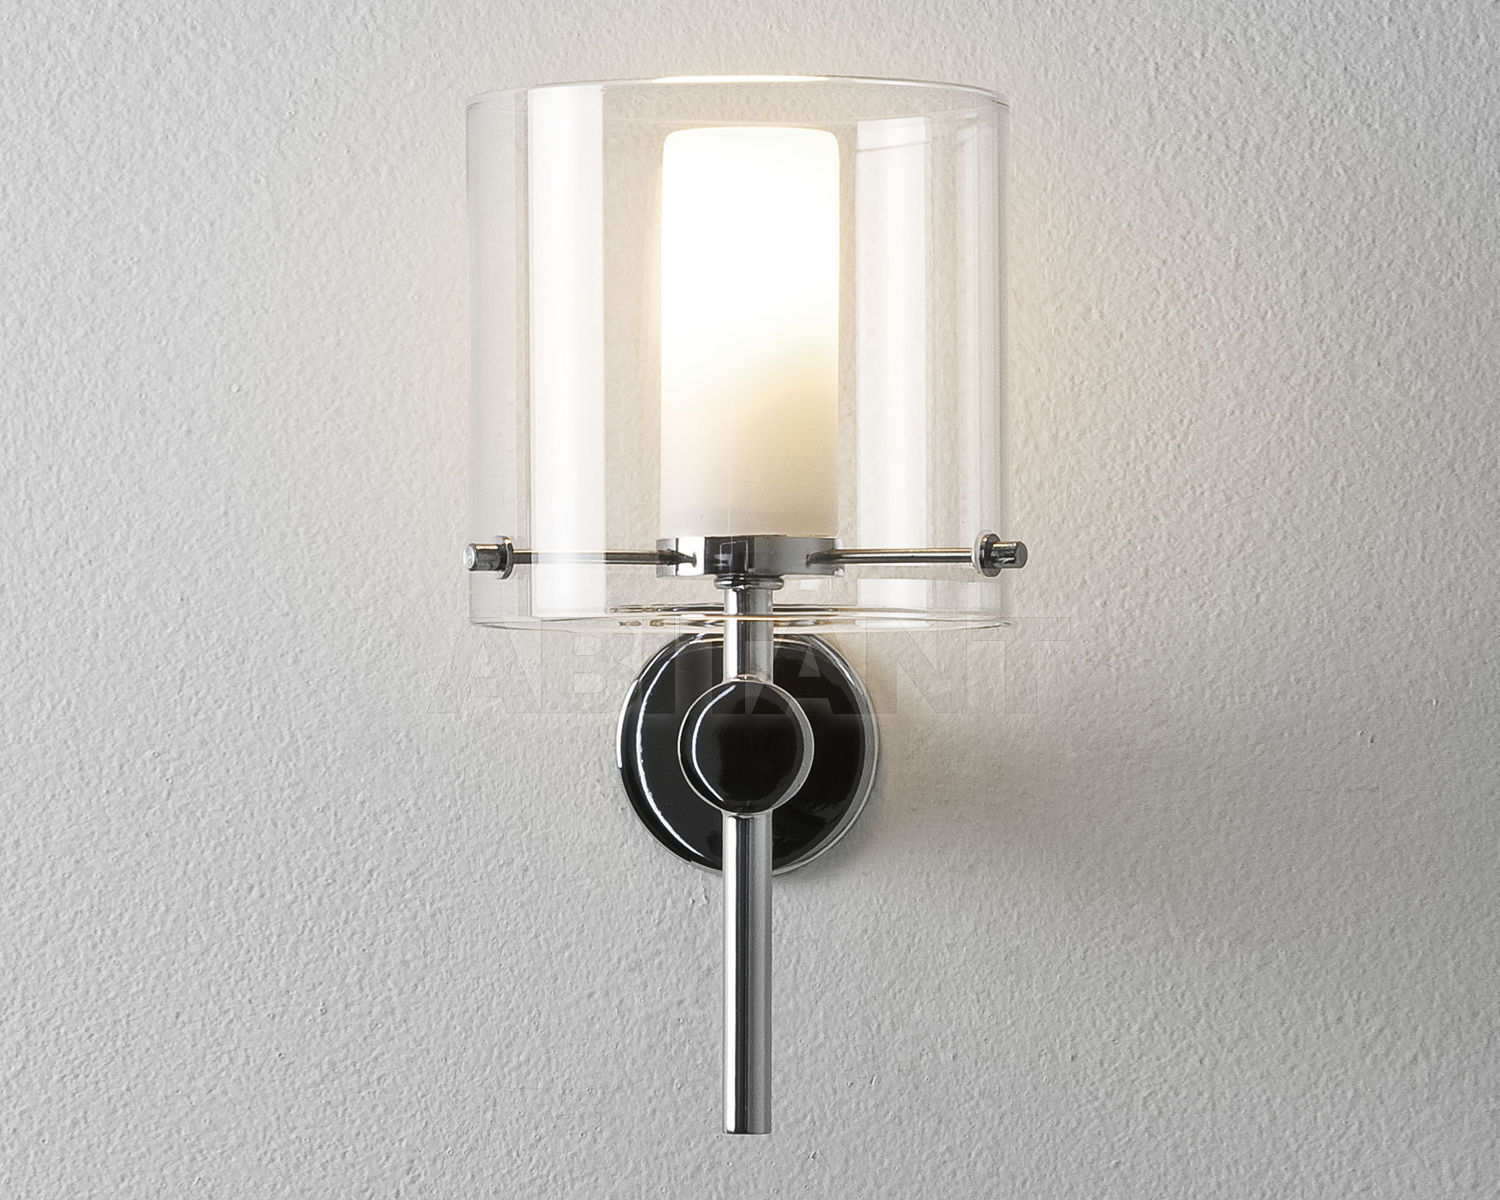 Купить Бра Arezzo Wall Astro Lighting Bathroom 1049001